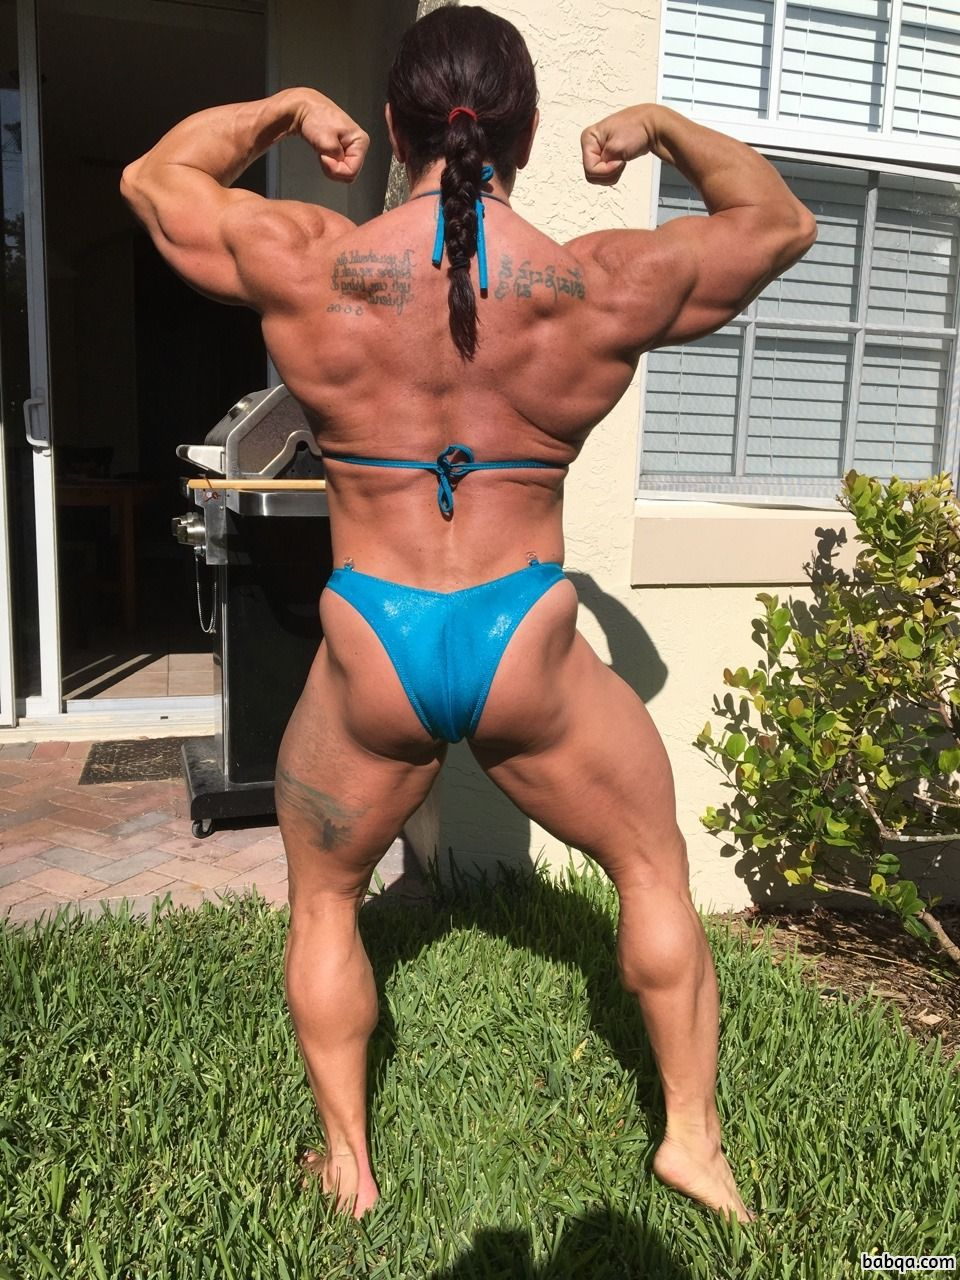 awesome female with muscle body and toned booty pic from tumblr